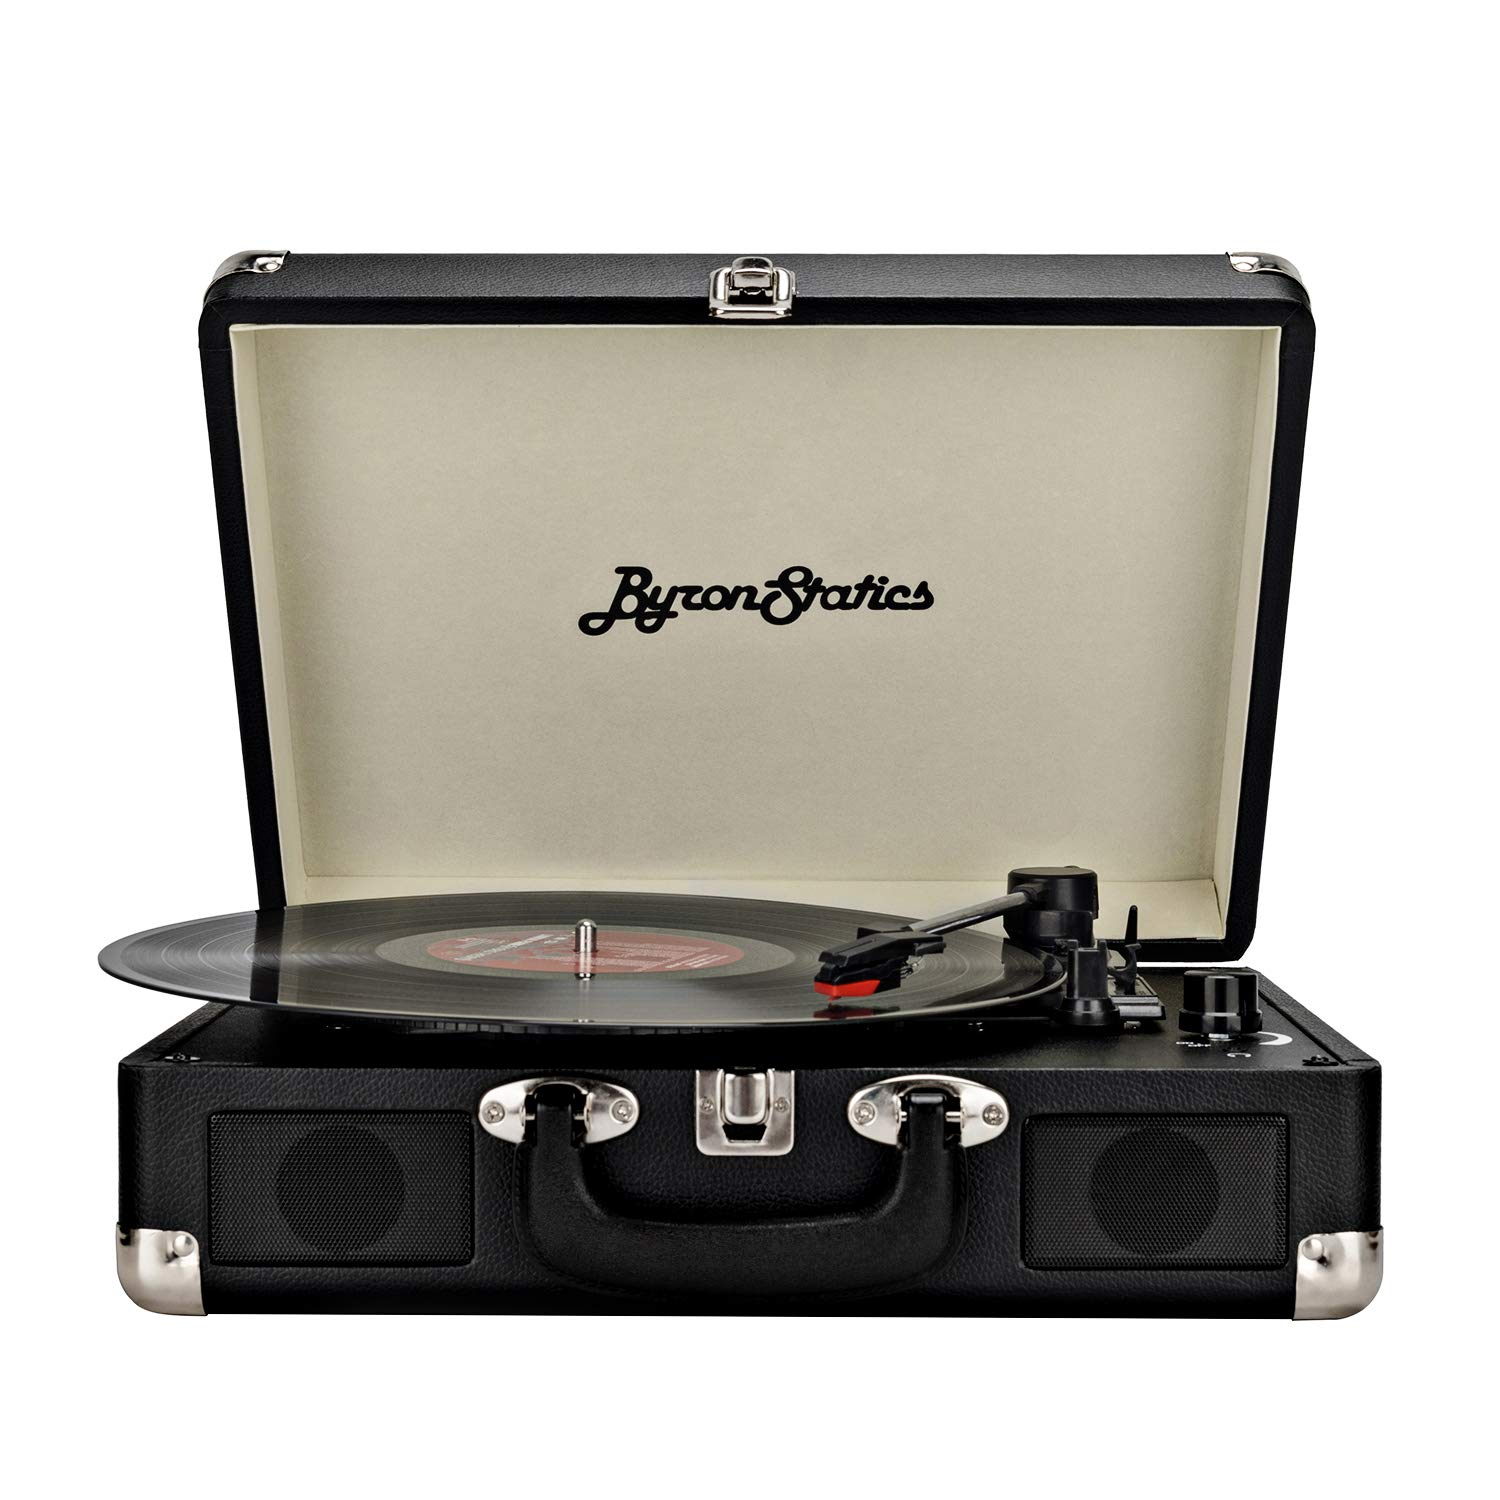 Byron Statics Record Player Vinyl Vintage Turntable Portable Nostalgic 3-Speed 2 Stereo Speakers Replacement Needle 9V 0.8A DC in Standard RCA Headphone Outputs Black by Byron Statics (Image #1)